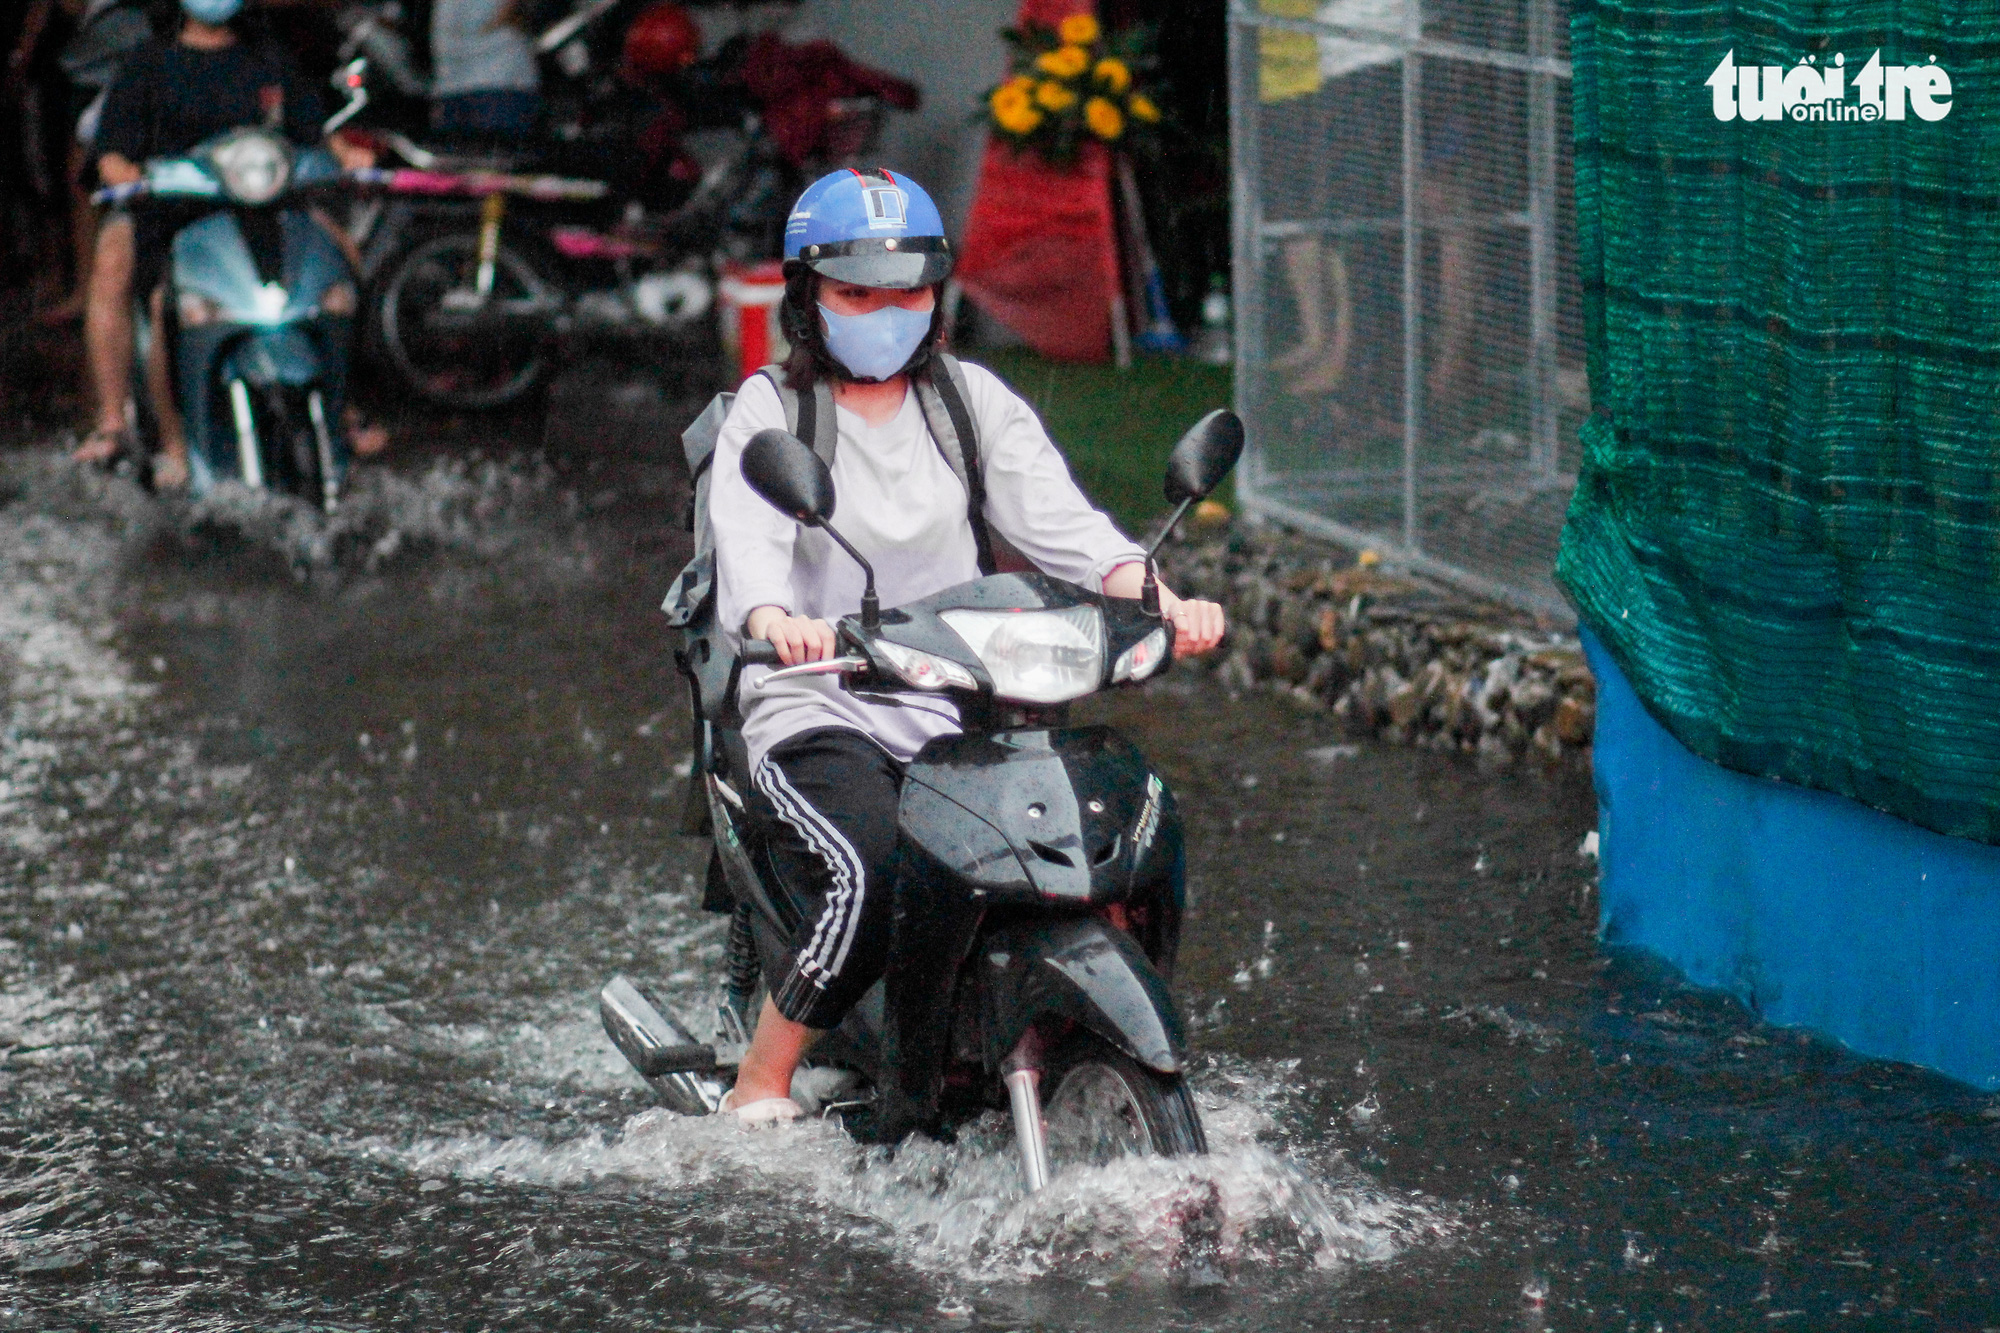 A commuter travels on a flooded street after heavy rain in Ho Chi Minh City, Vietnam September 6, 2020. Photo: Chau Tuan / Tuoi Tre